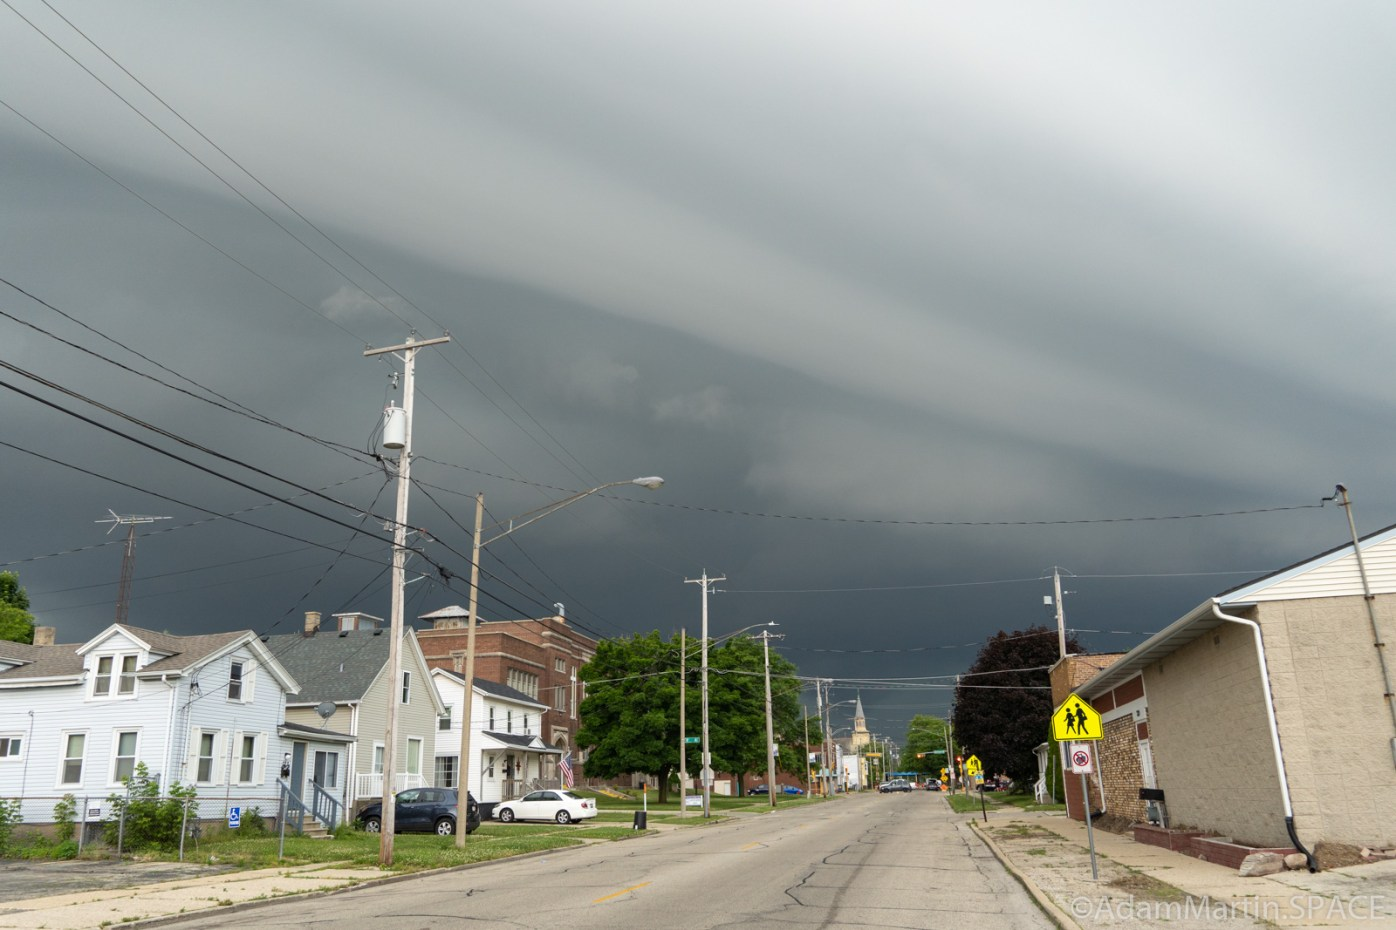 Storm clouds rolling in fast over Washington Road & 7th Ave intersection